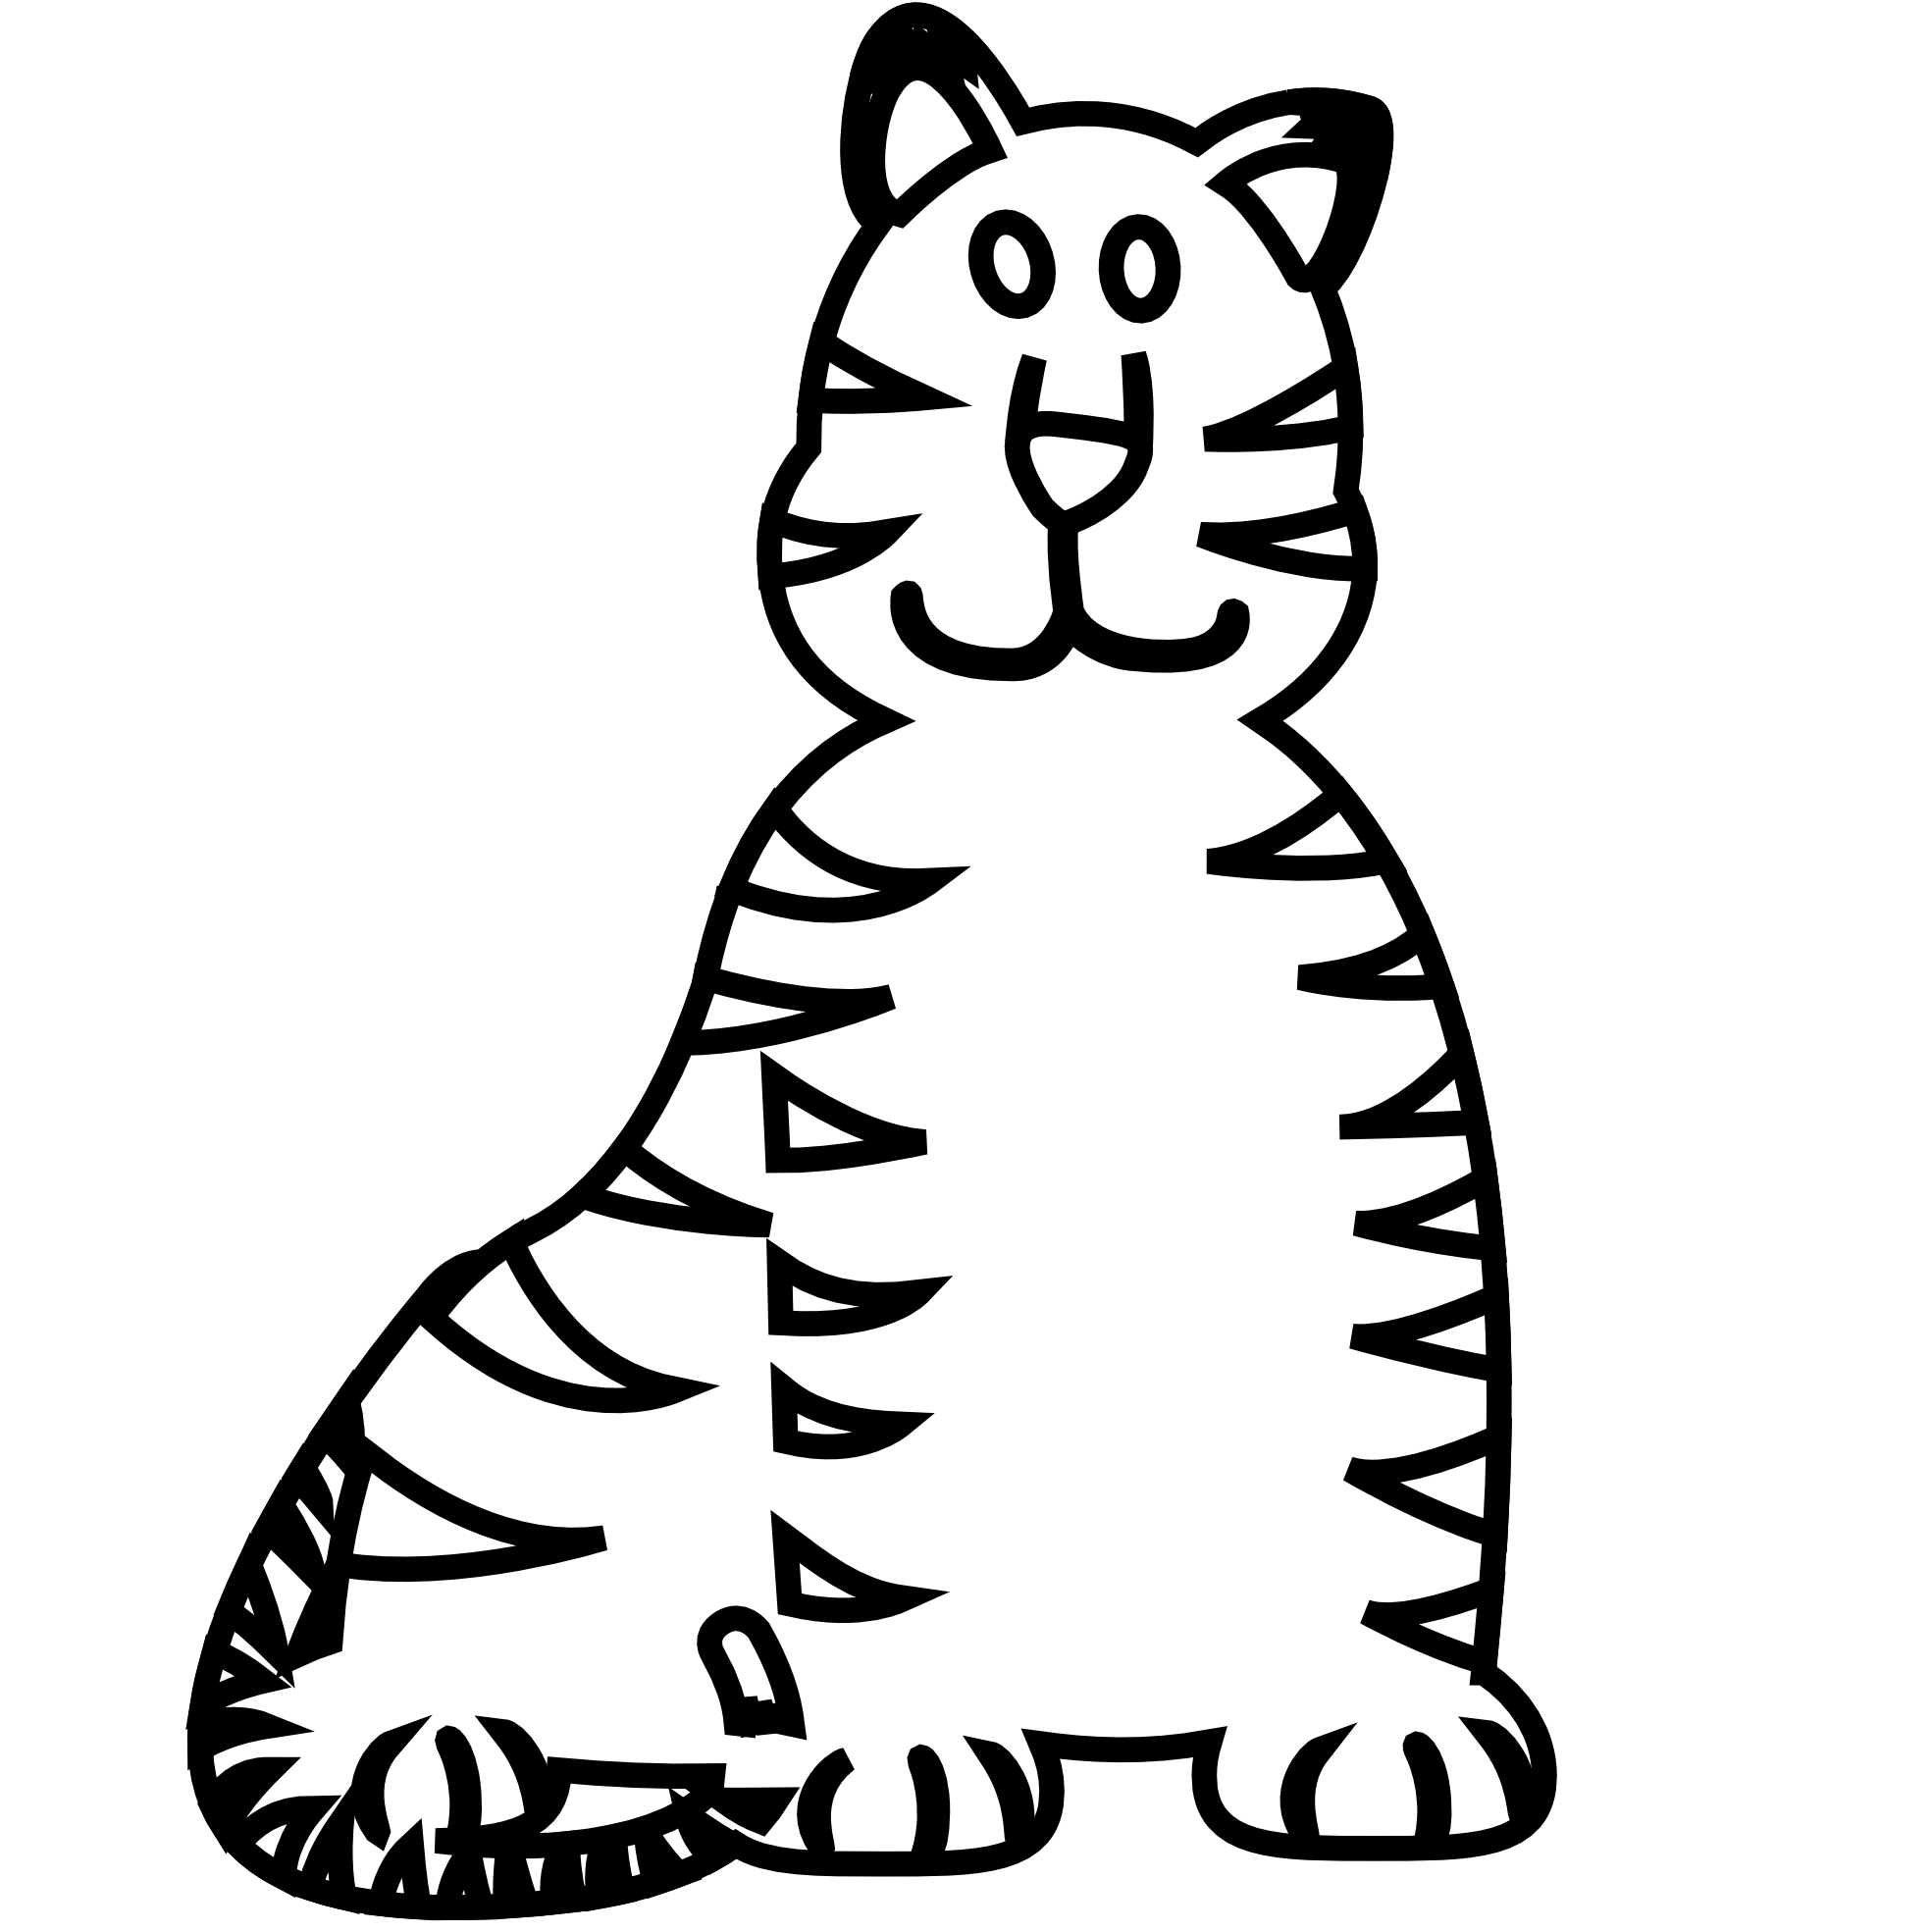 Dime clipart black and white. Free animal download clip